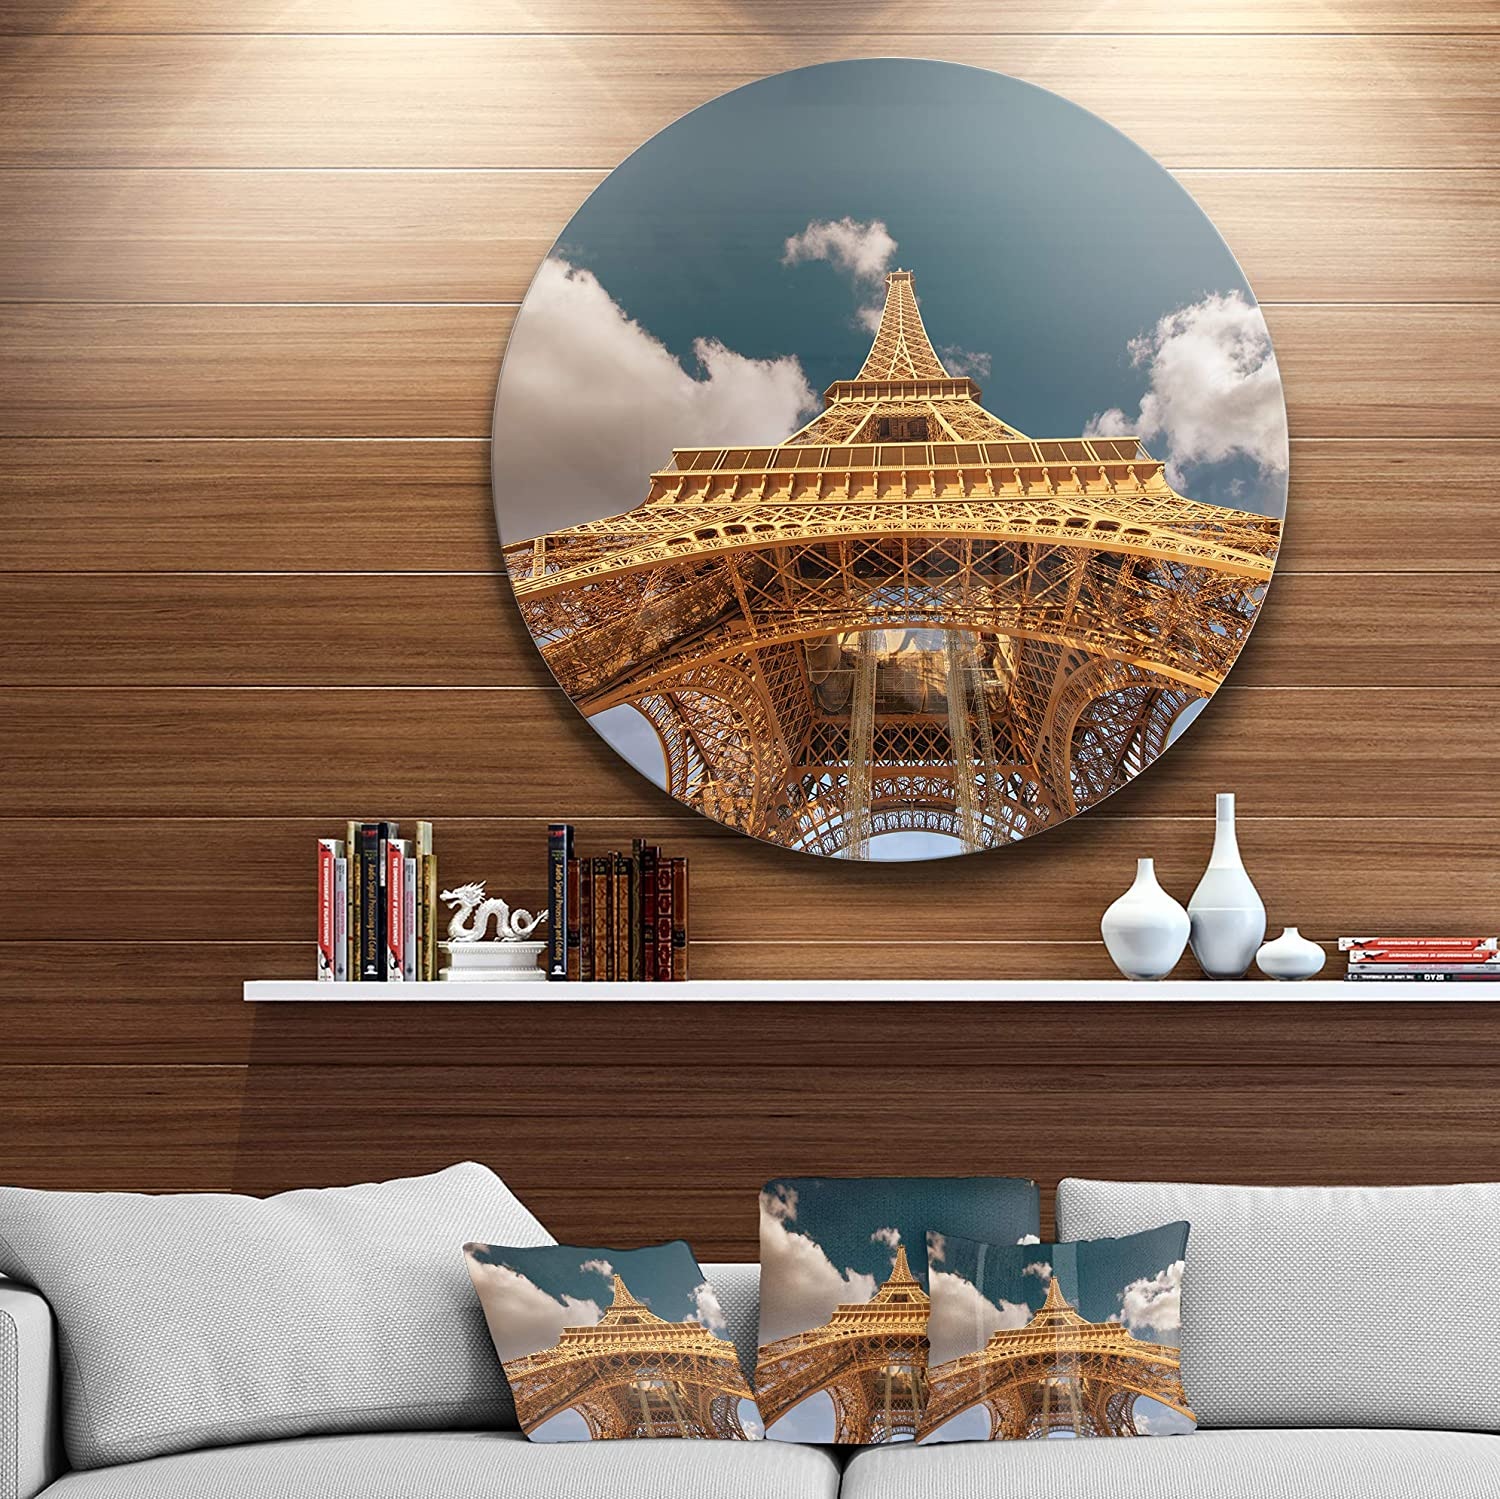 Designart Mt10140 C11 Beautiful View Of Paris Eiffel Tower Under Dark Sky Cityscape Circle Wall Art Disc 11 X 11 Blue White Amazon In Home Kitchen